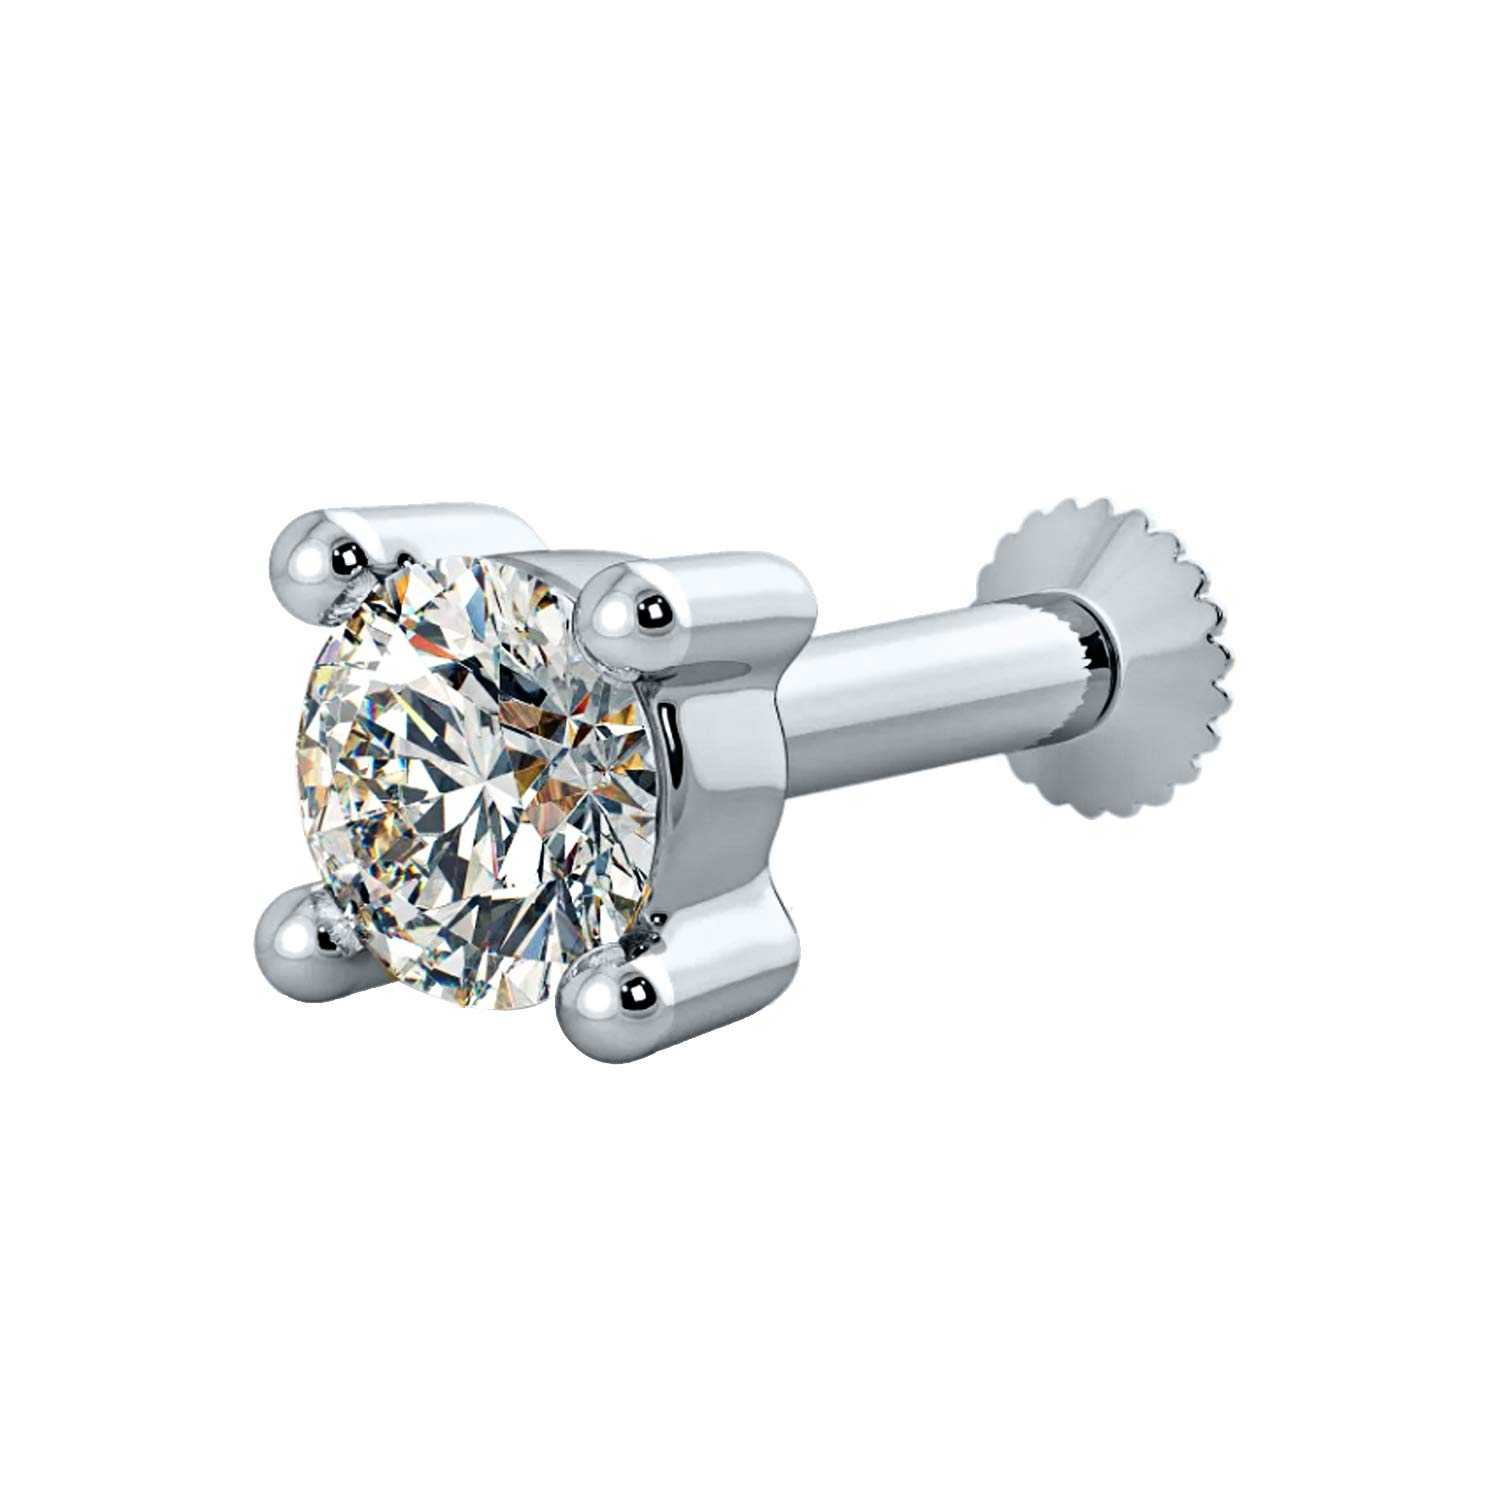 House of Kanak LLC 0.20 Ct 3.8 mm Real Diamond 4 Prong Solid 14K White Gold Screw Stud Nose Ring